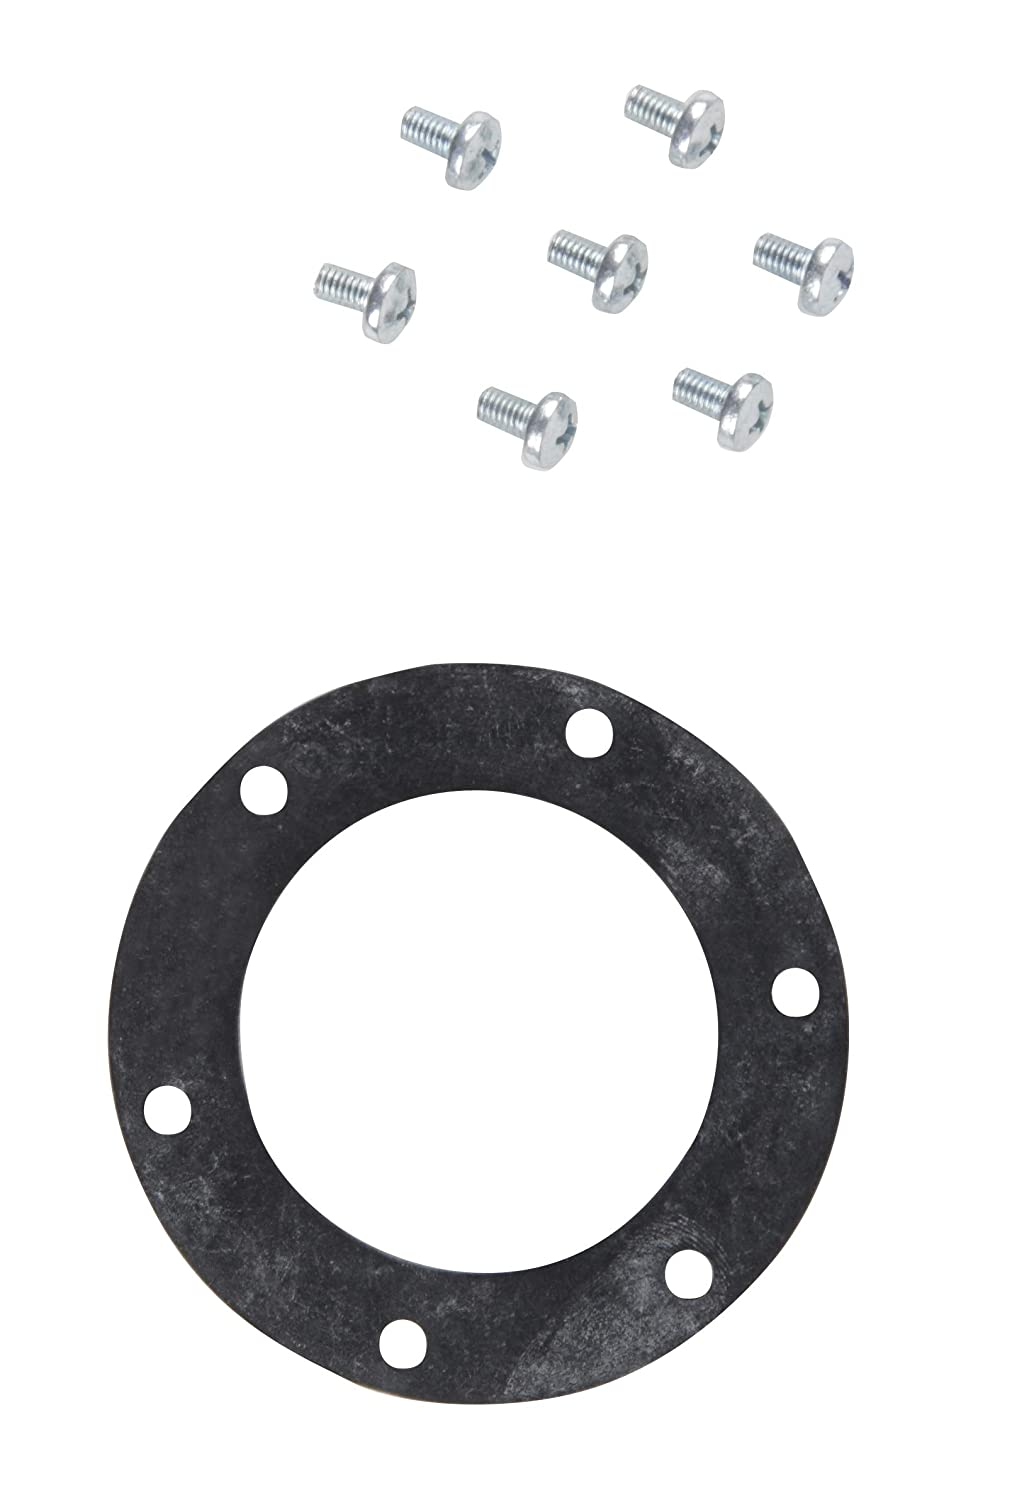 Spectra Premium LO33 Fuel Tank Lock Ring for Toyota